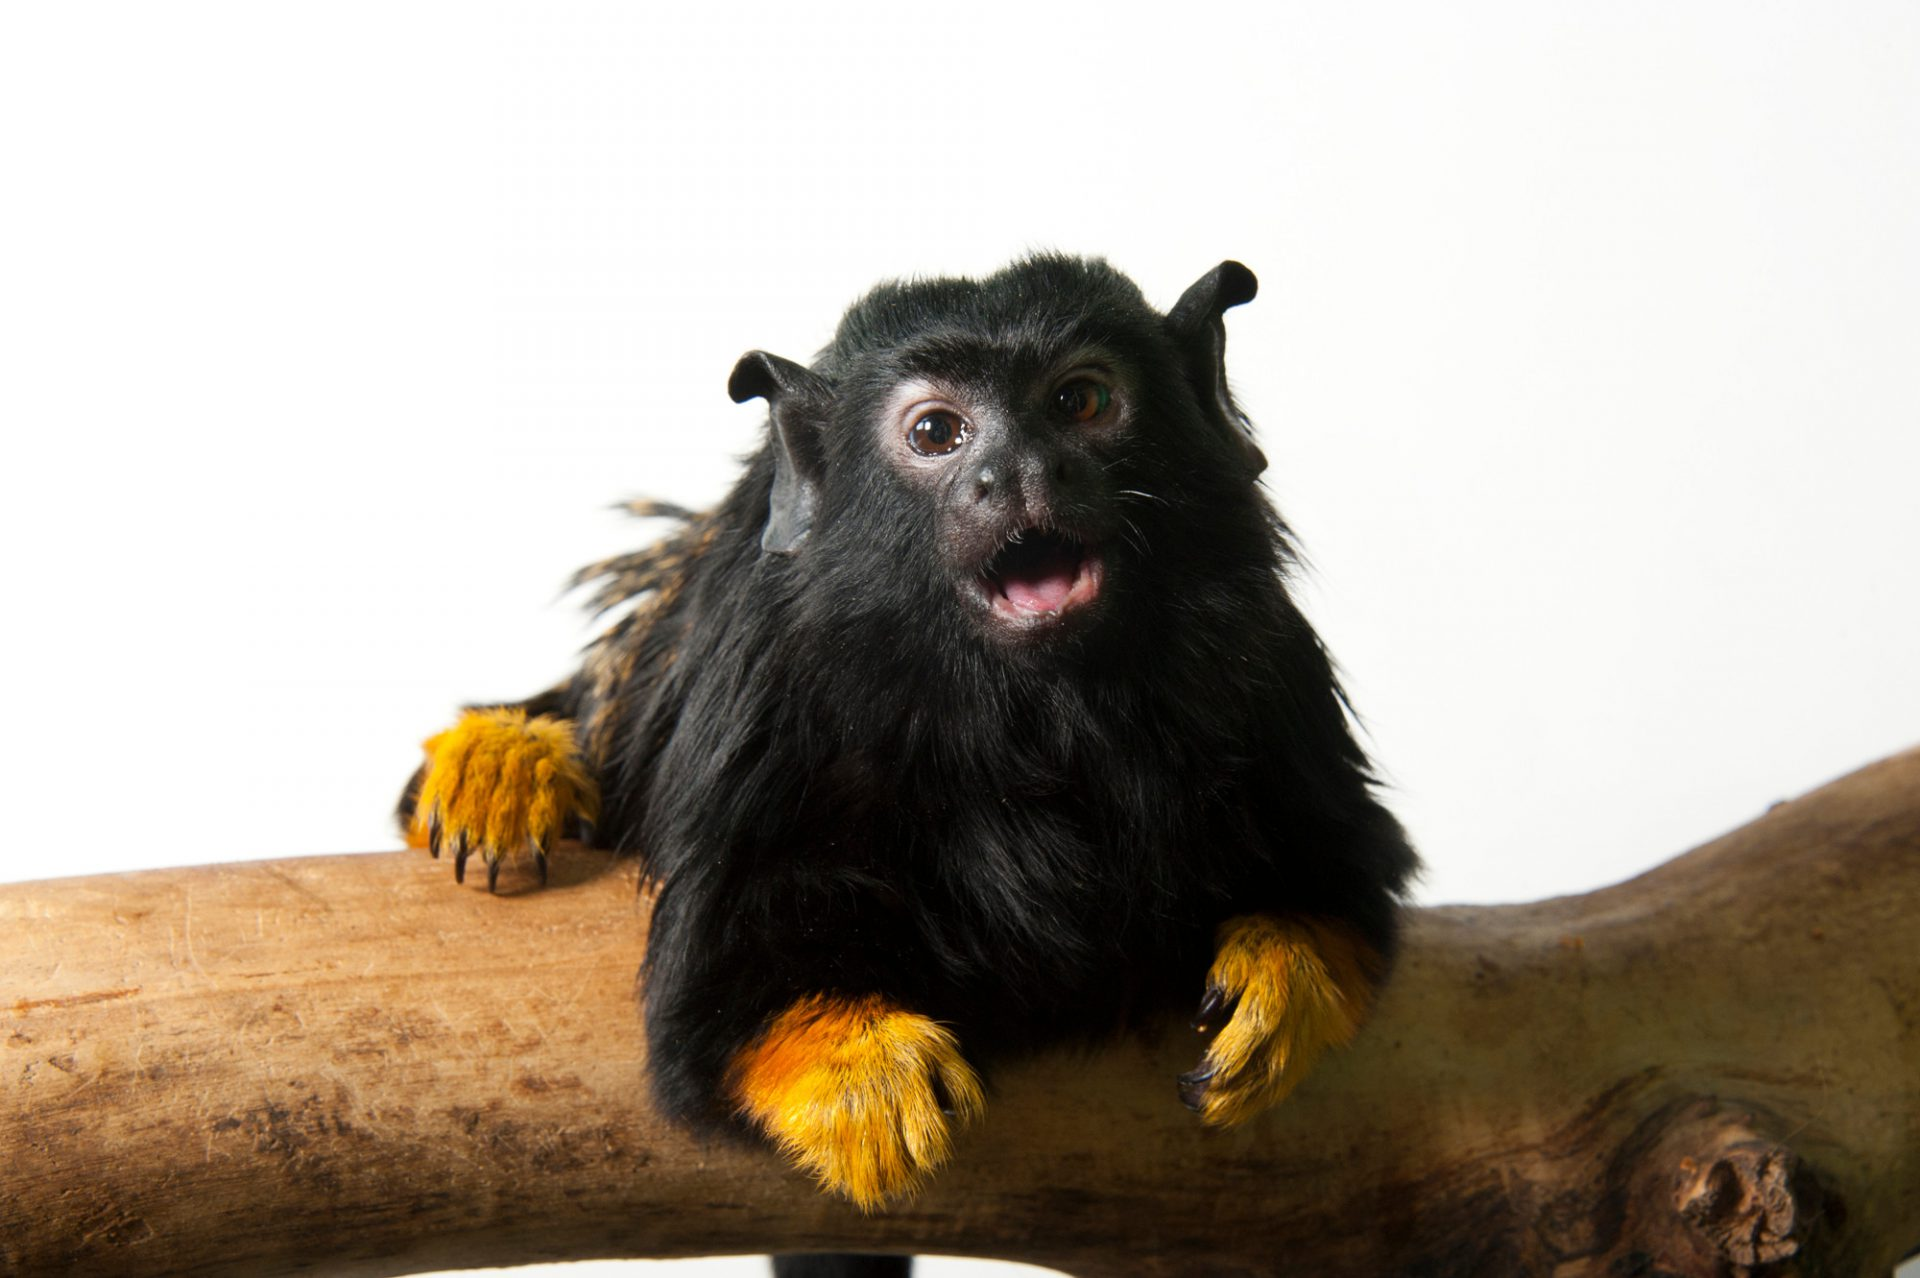 A gold-handed tamarin (Saguinus midas) at the Miller Park Zoo. The future of this species is quite uncertain as it is going to be 'phased out' in favor of other more showy and popular small primate species.